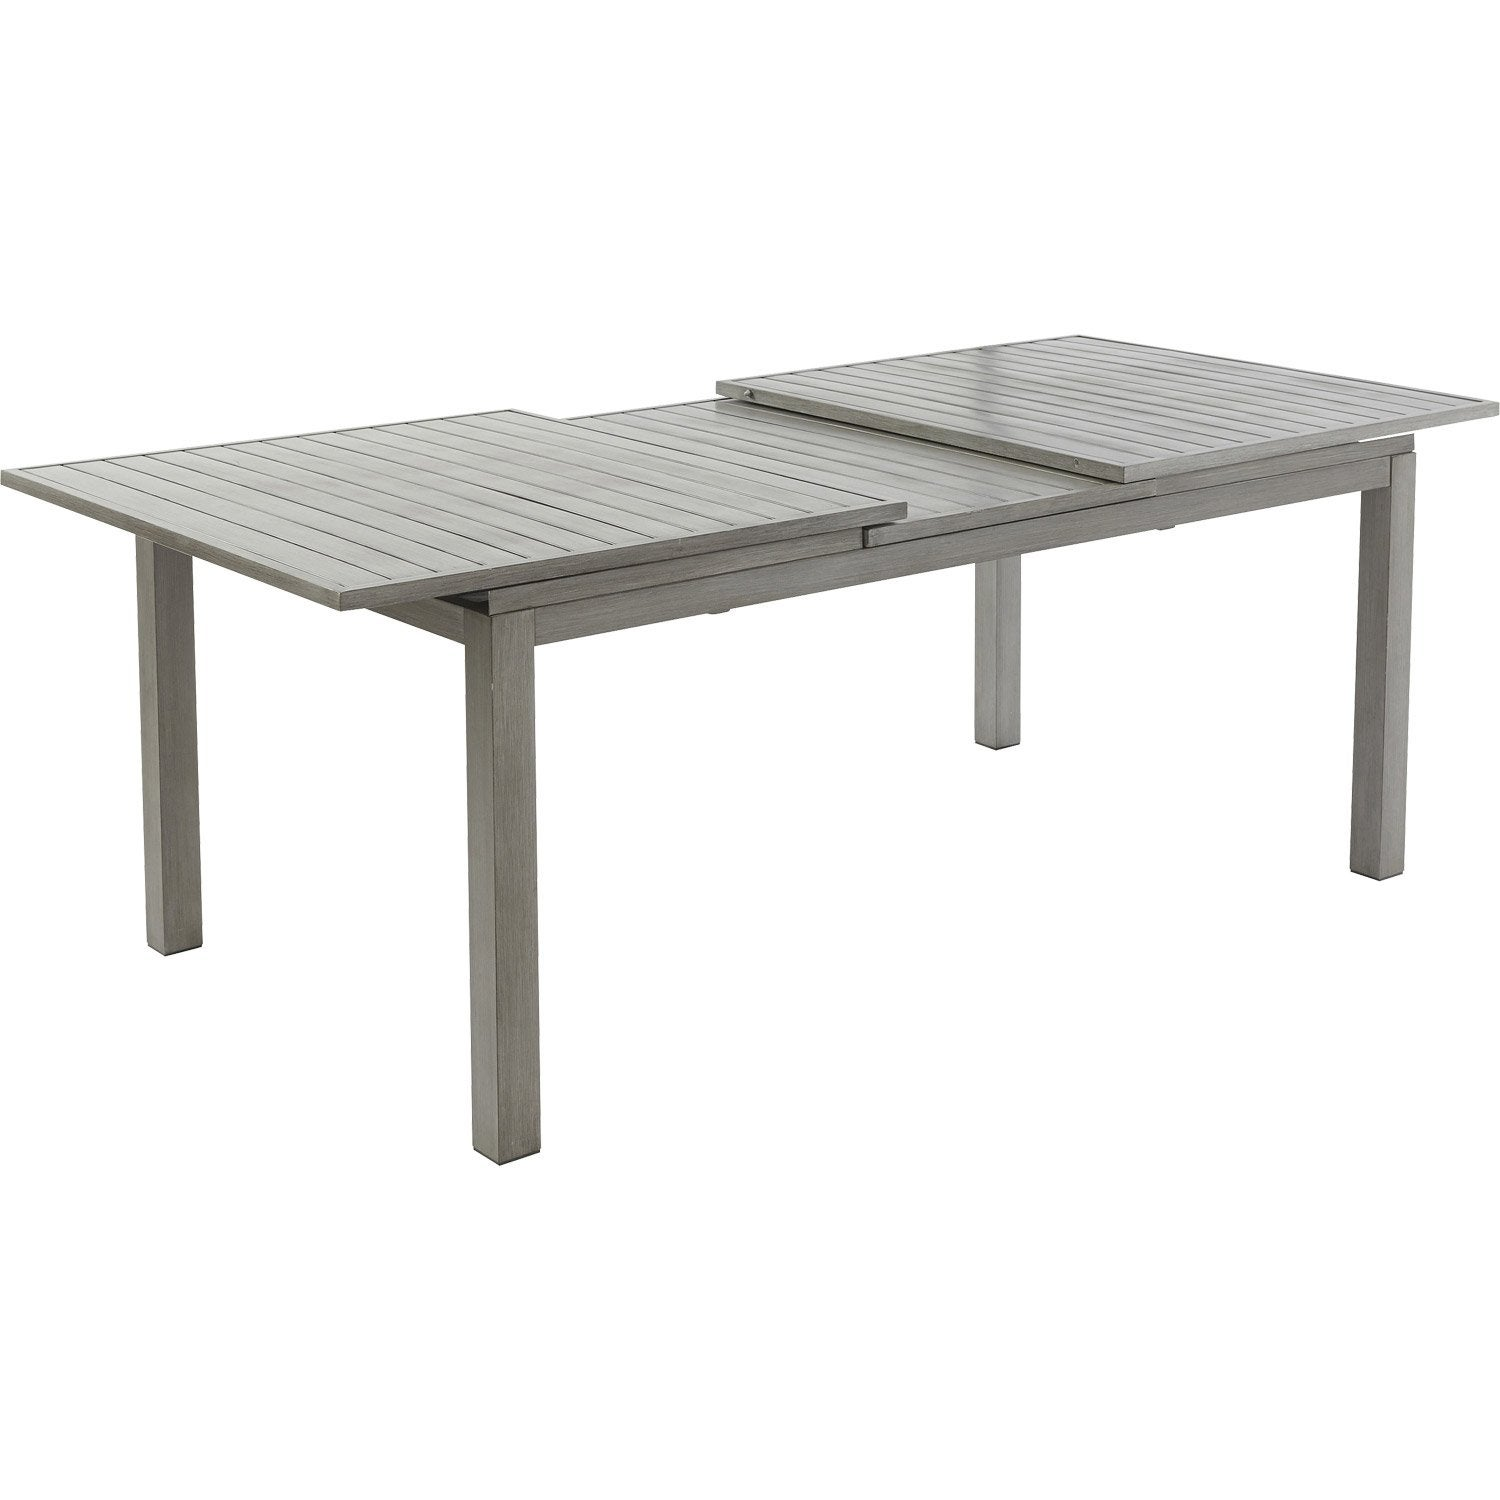 Table de jardin avec extension rectangulaire aluwood for Banco jardin leroy merlin